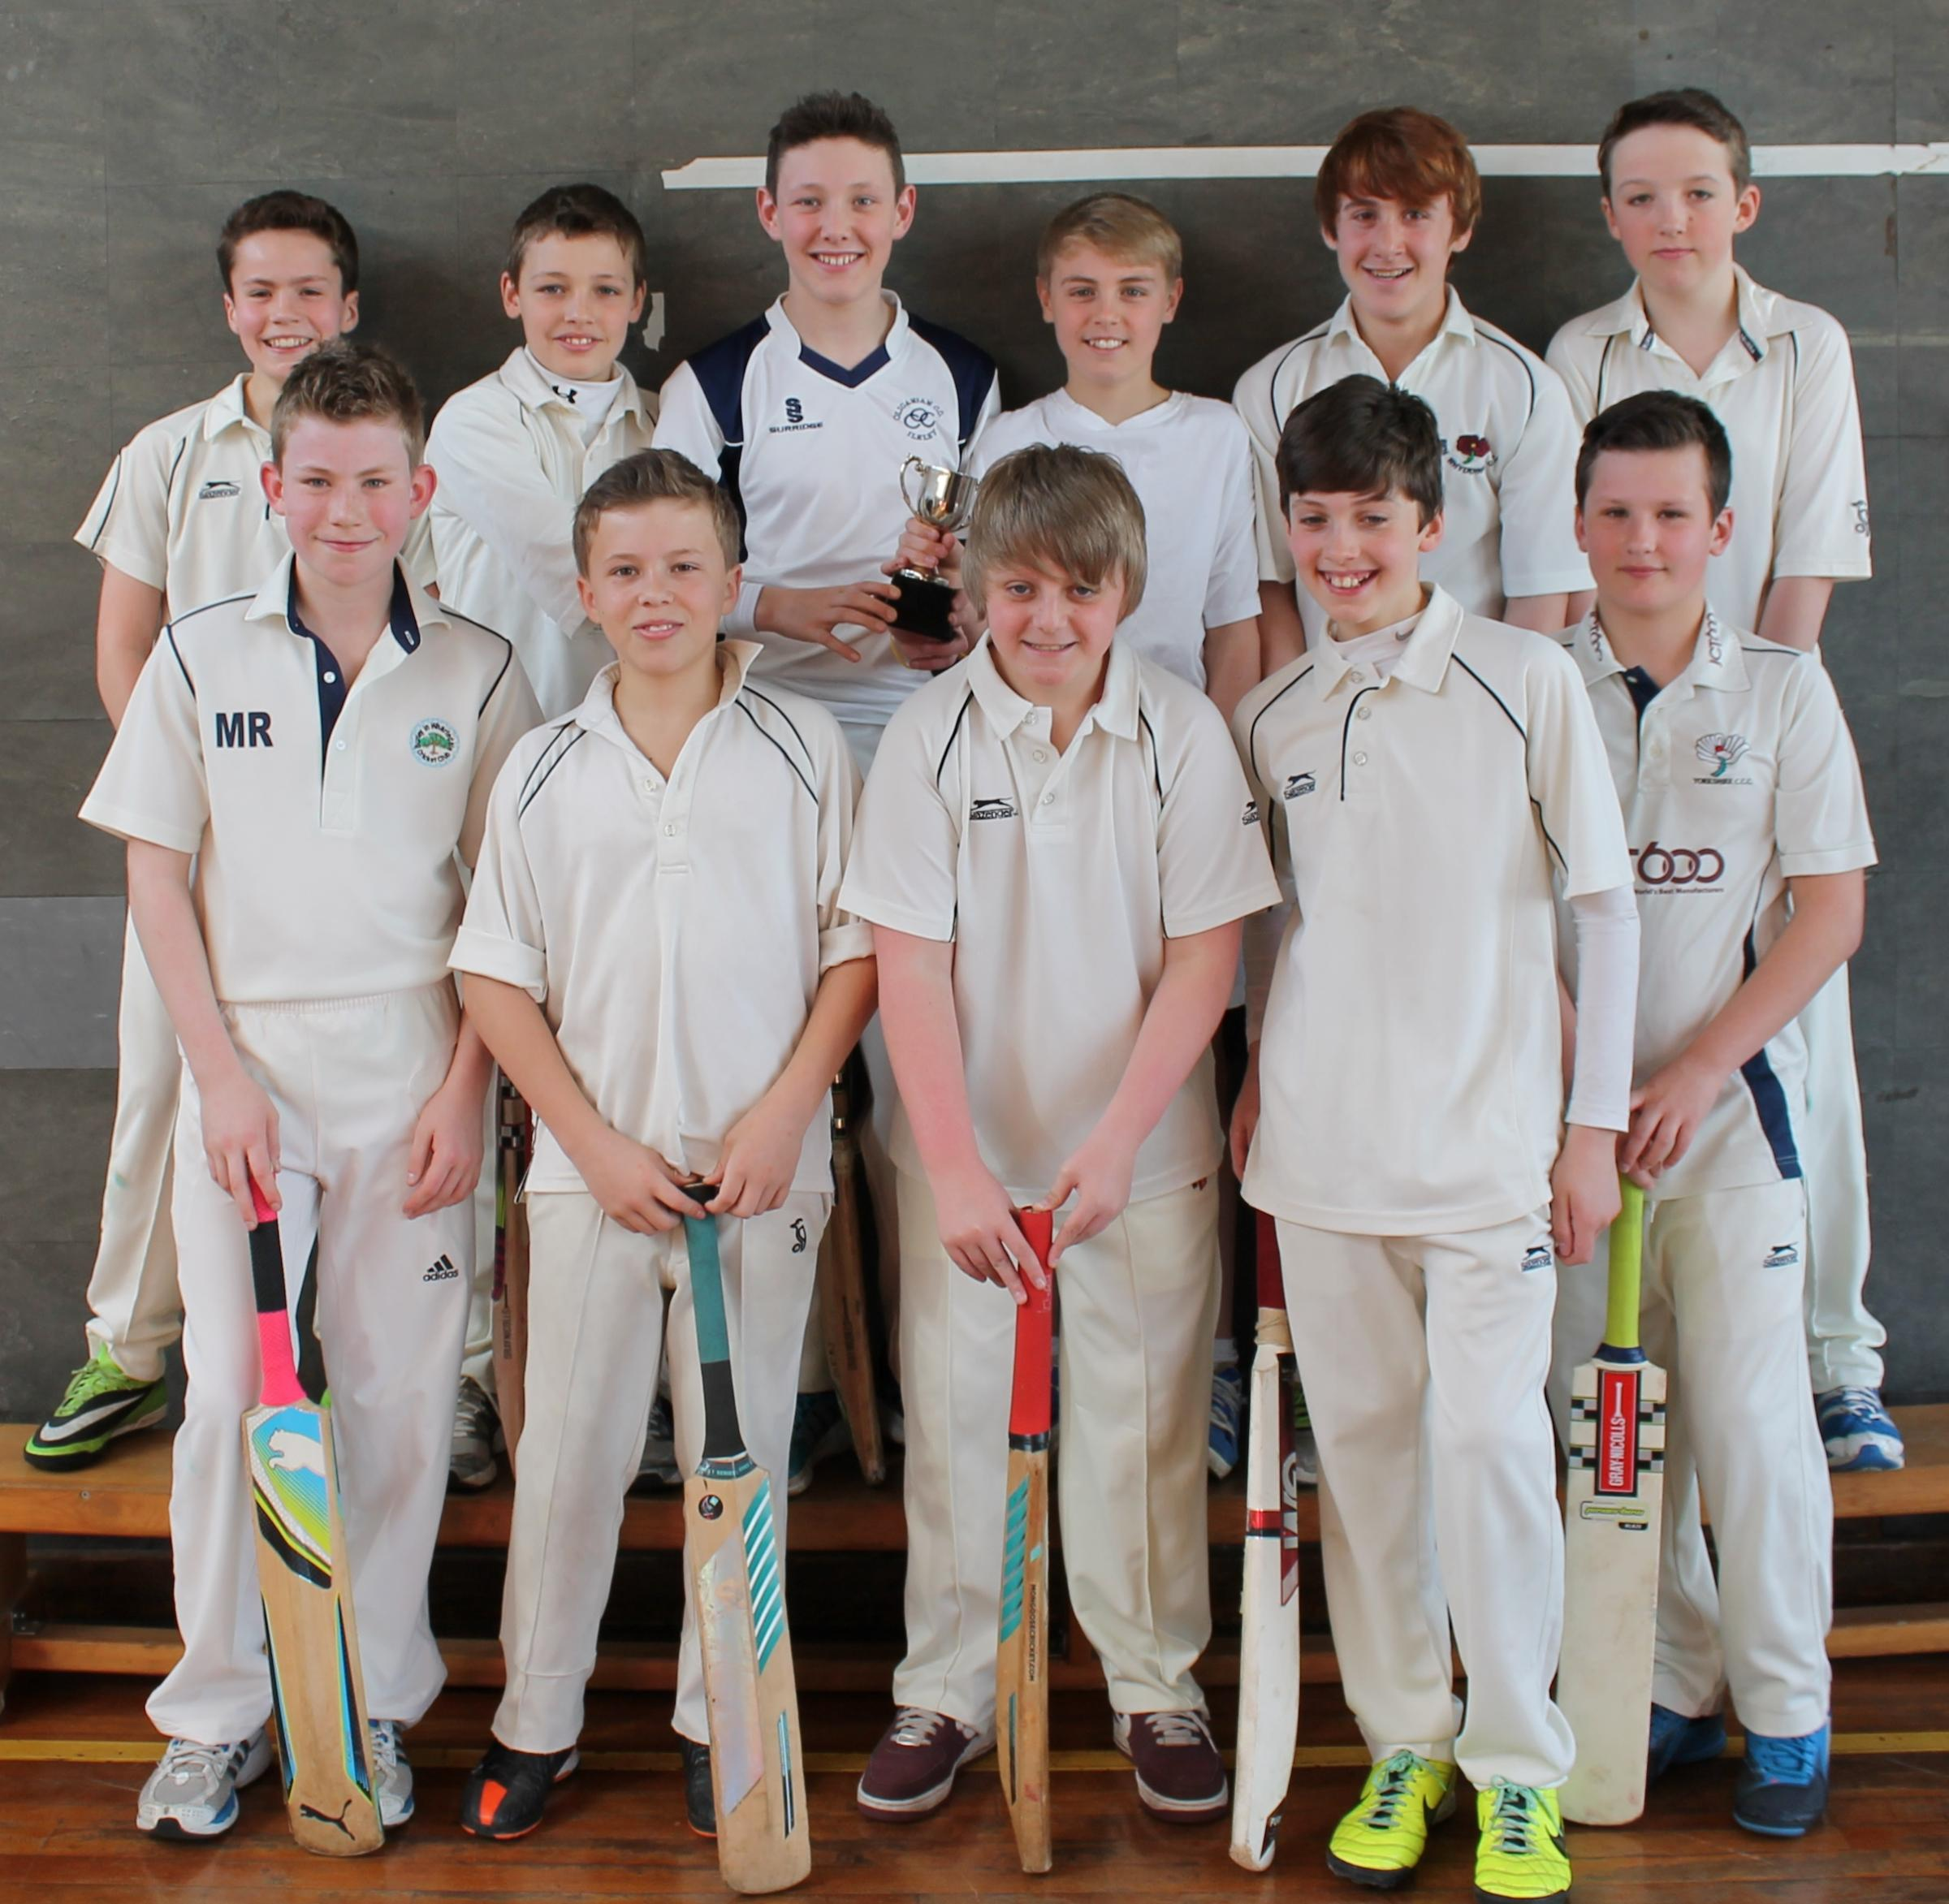 Top row, left to right, Joe Haigh, Oliver Burton, Ben Patchett (Capt), James Sil-son, Sam McKinnon Evans and Daniel Rowe. Bottom row, left to right Matthew Revis, Harvey Sykes, Fraser Farmery, Matthew Spencer and James Hudson